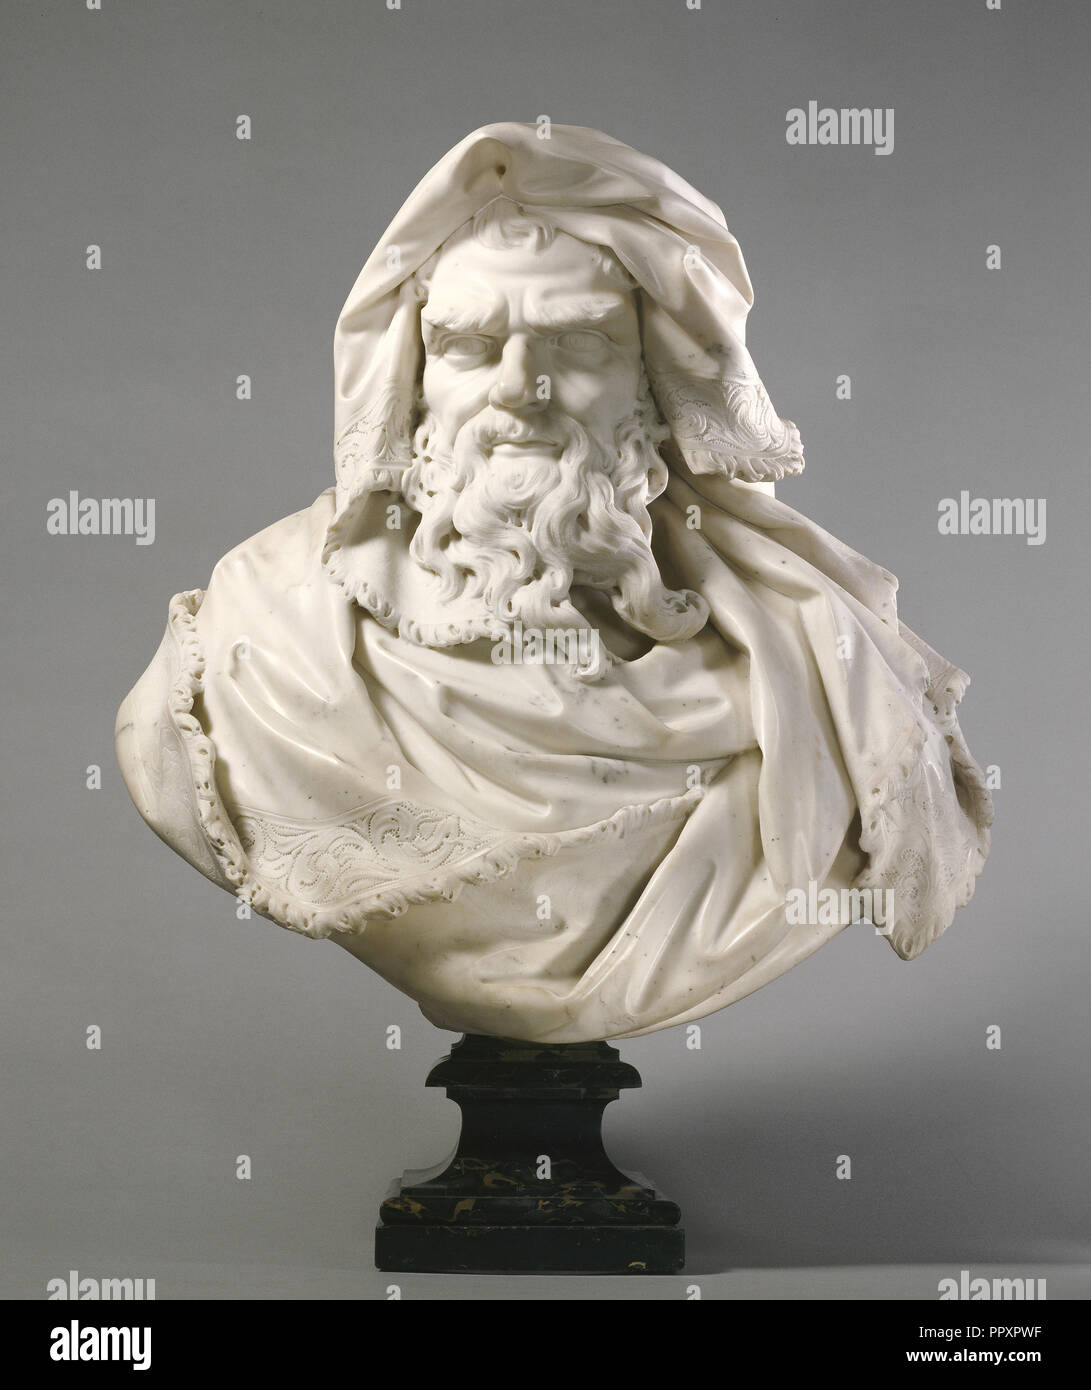 Bust of Winter; Paul Heermann, German, 1673 - 1732, first third of 18th century; Marble; 65.1 x 63.5 x 33.7 cm - Stock Image